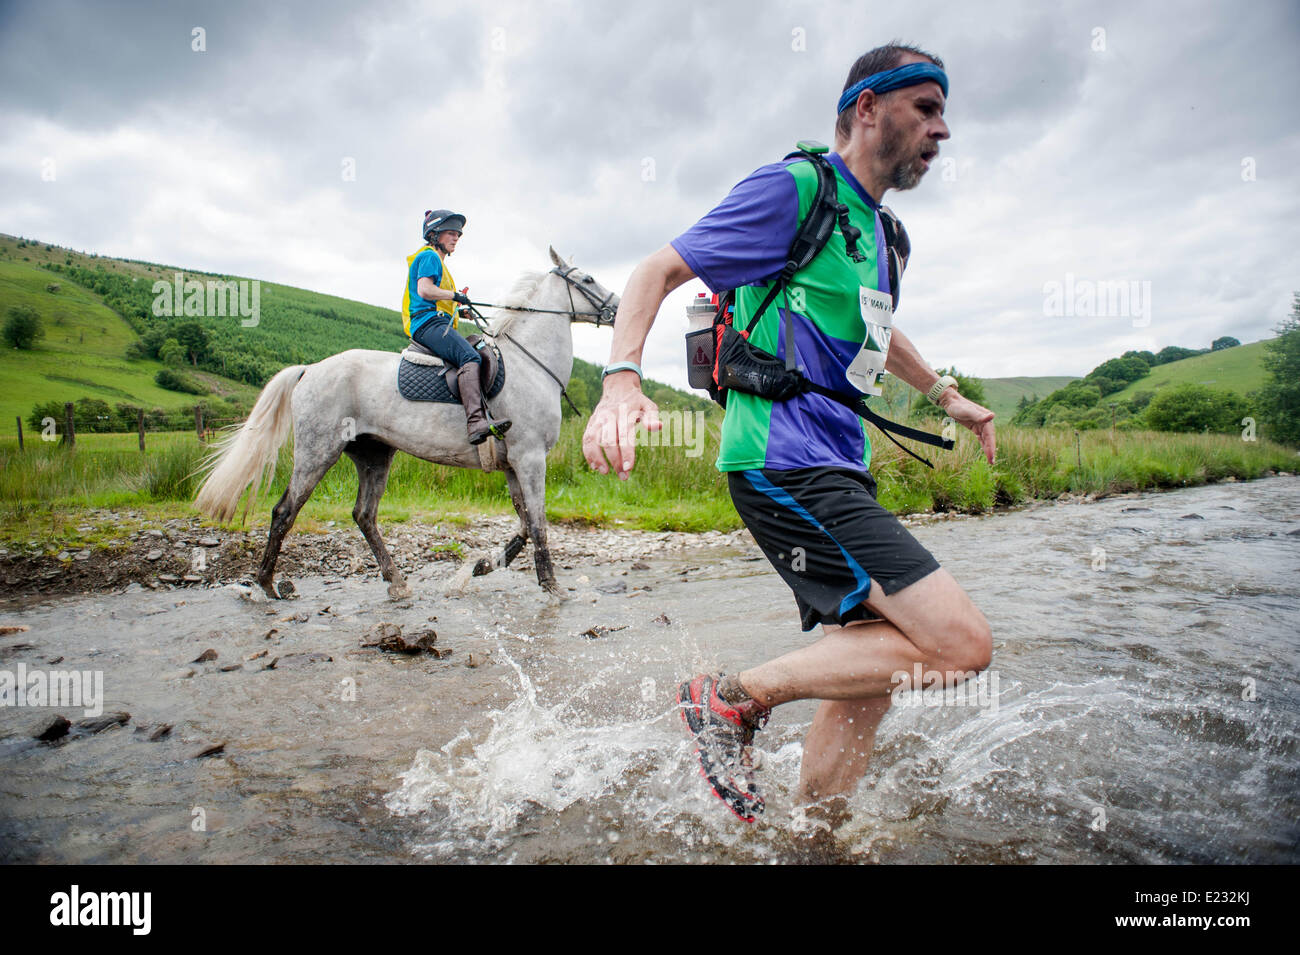 Llanwrtyd Wells, UK. Saturday 14 June 2014  Pictured: Runners and riders make their way through the course at the - Stock Image